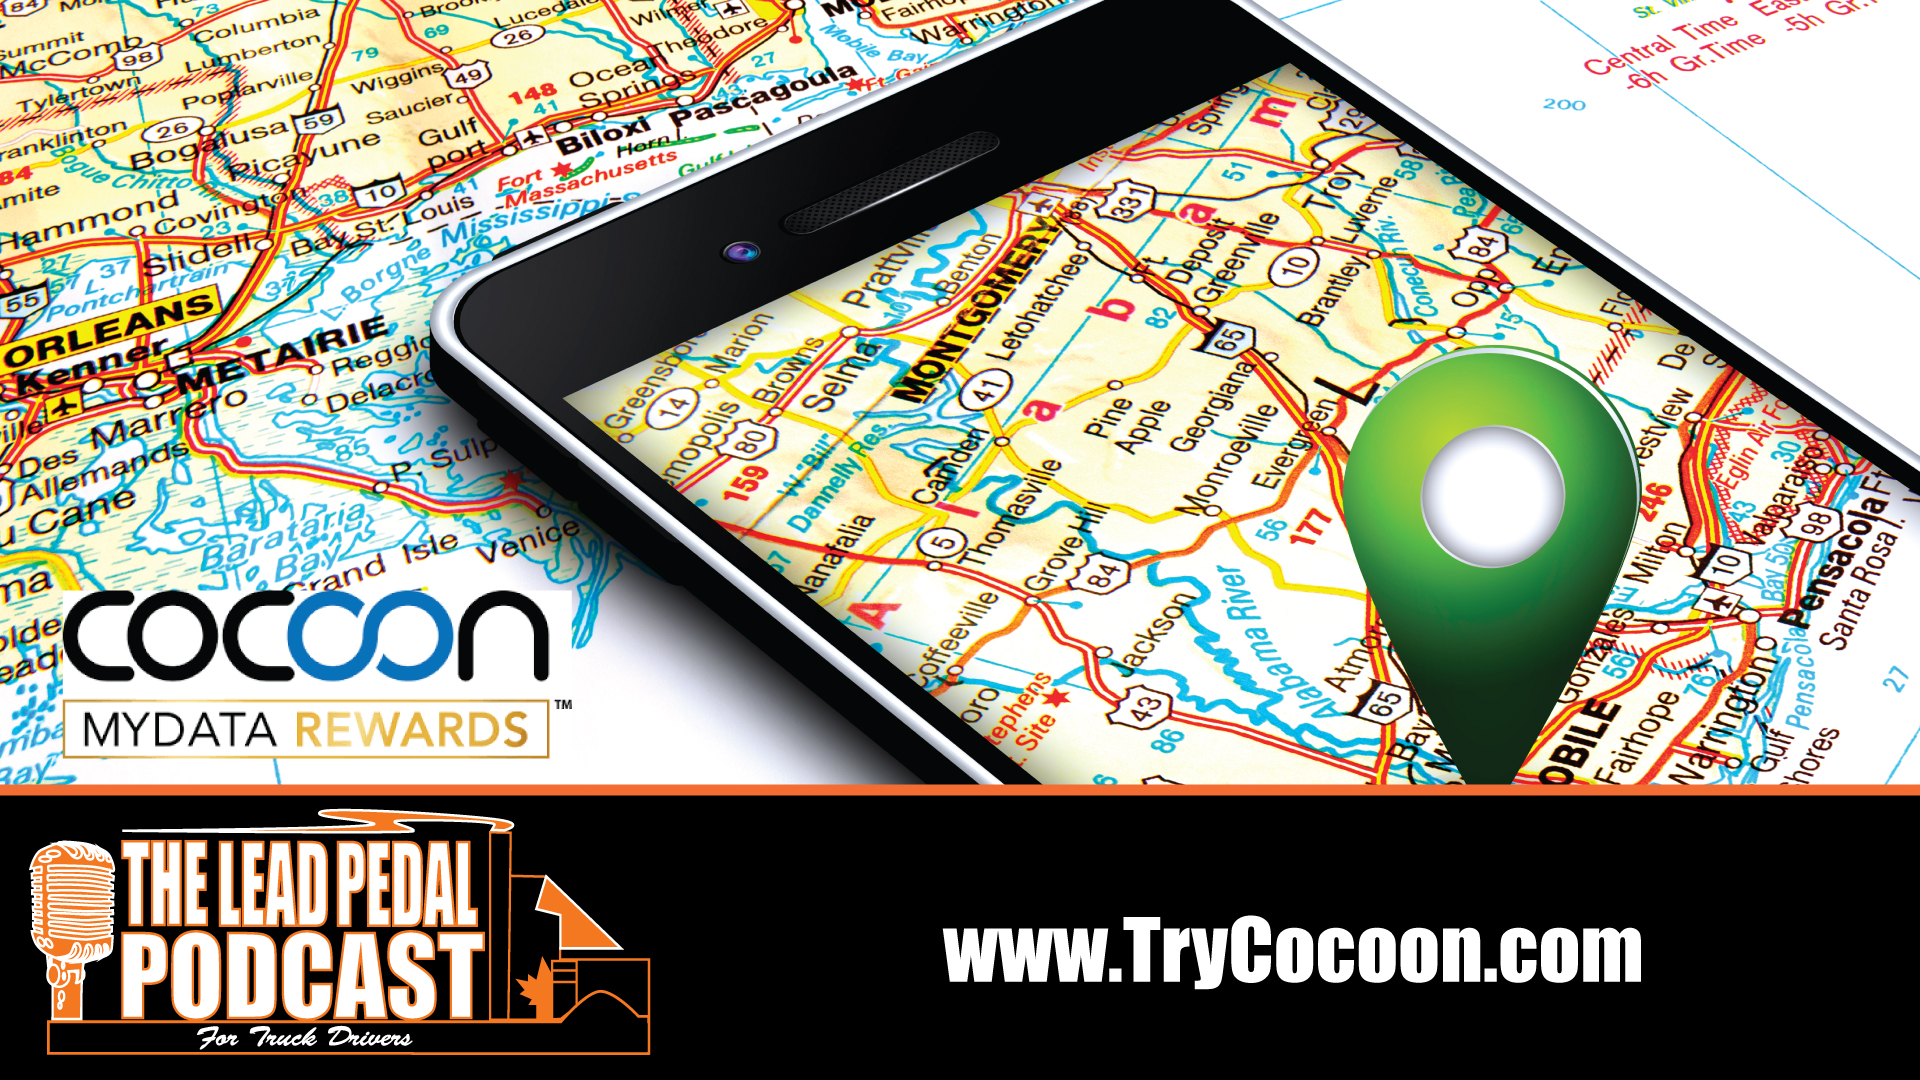 Cocoon More Money as a Truck Driver with Cocoon My Data Rewards